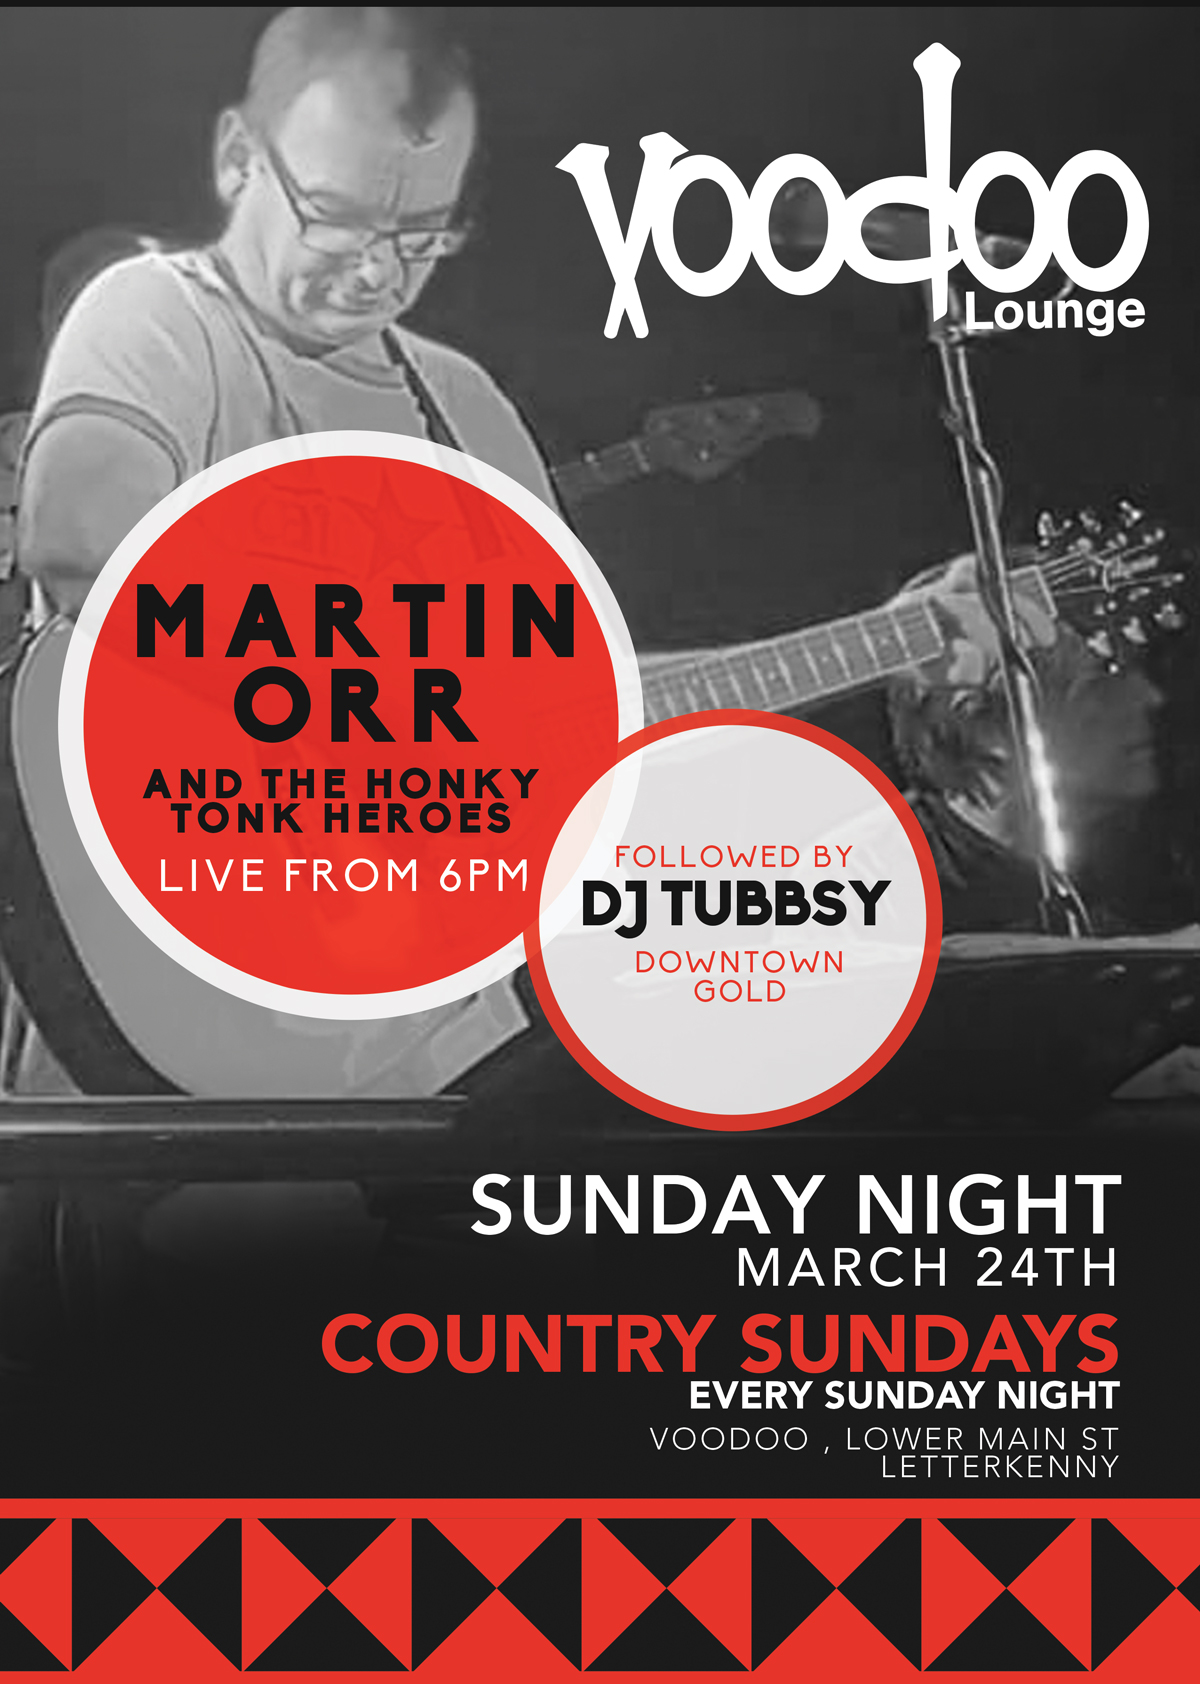 voodoo-lounge---MARTIN-ORR-COUNTRY-SUNDAYS-SUN-MARCH-24--2019.jpg